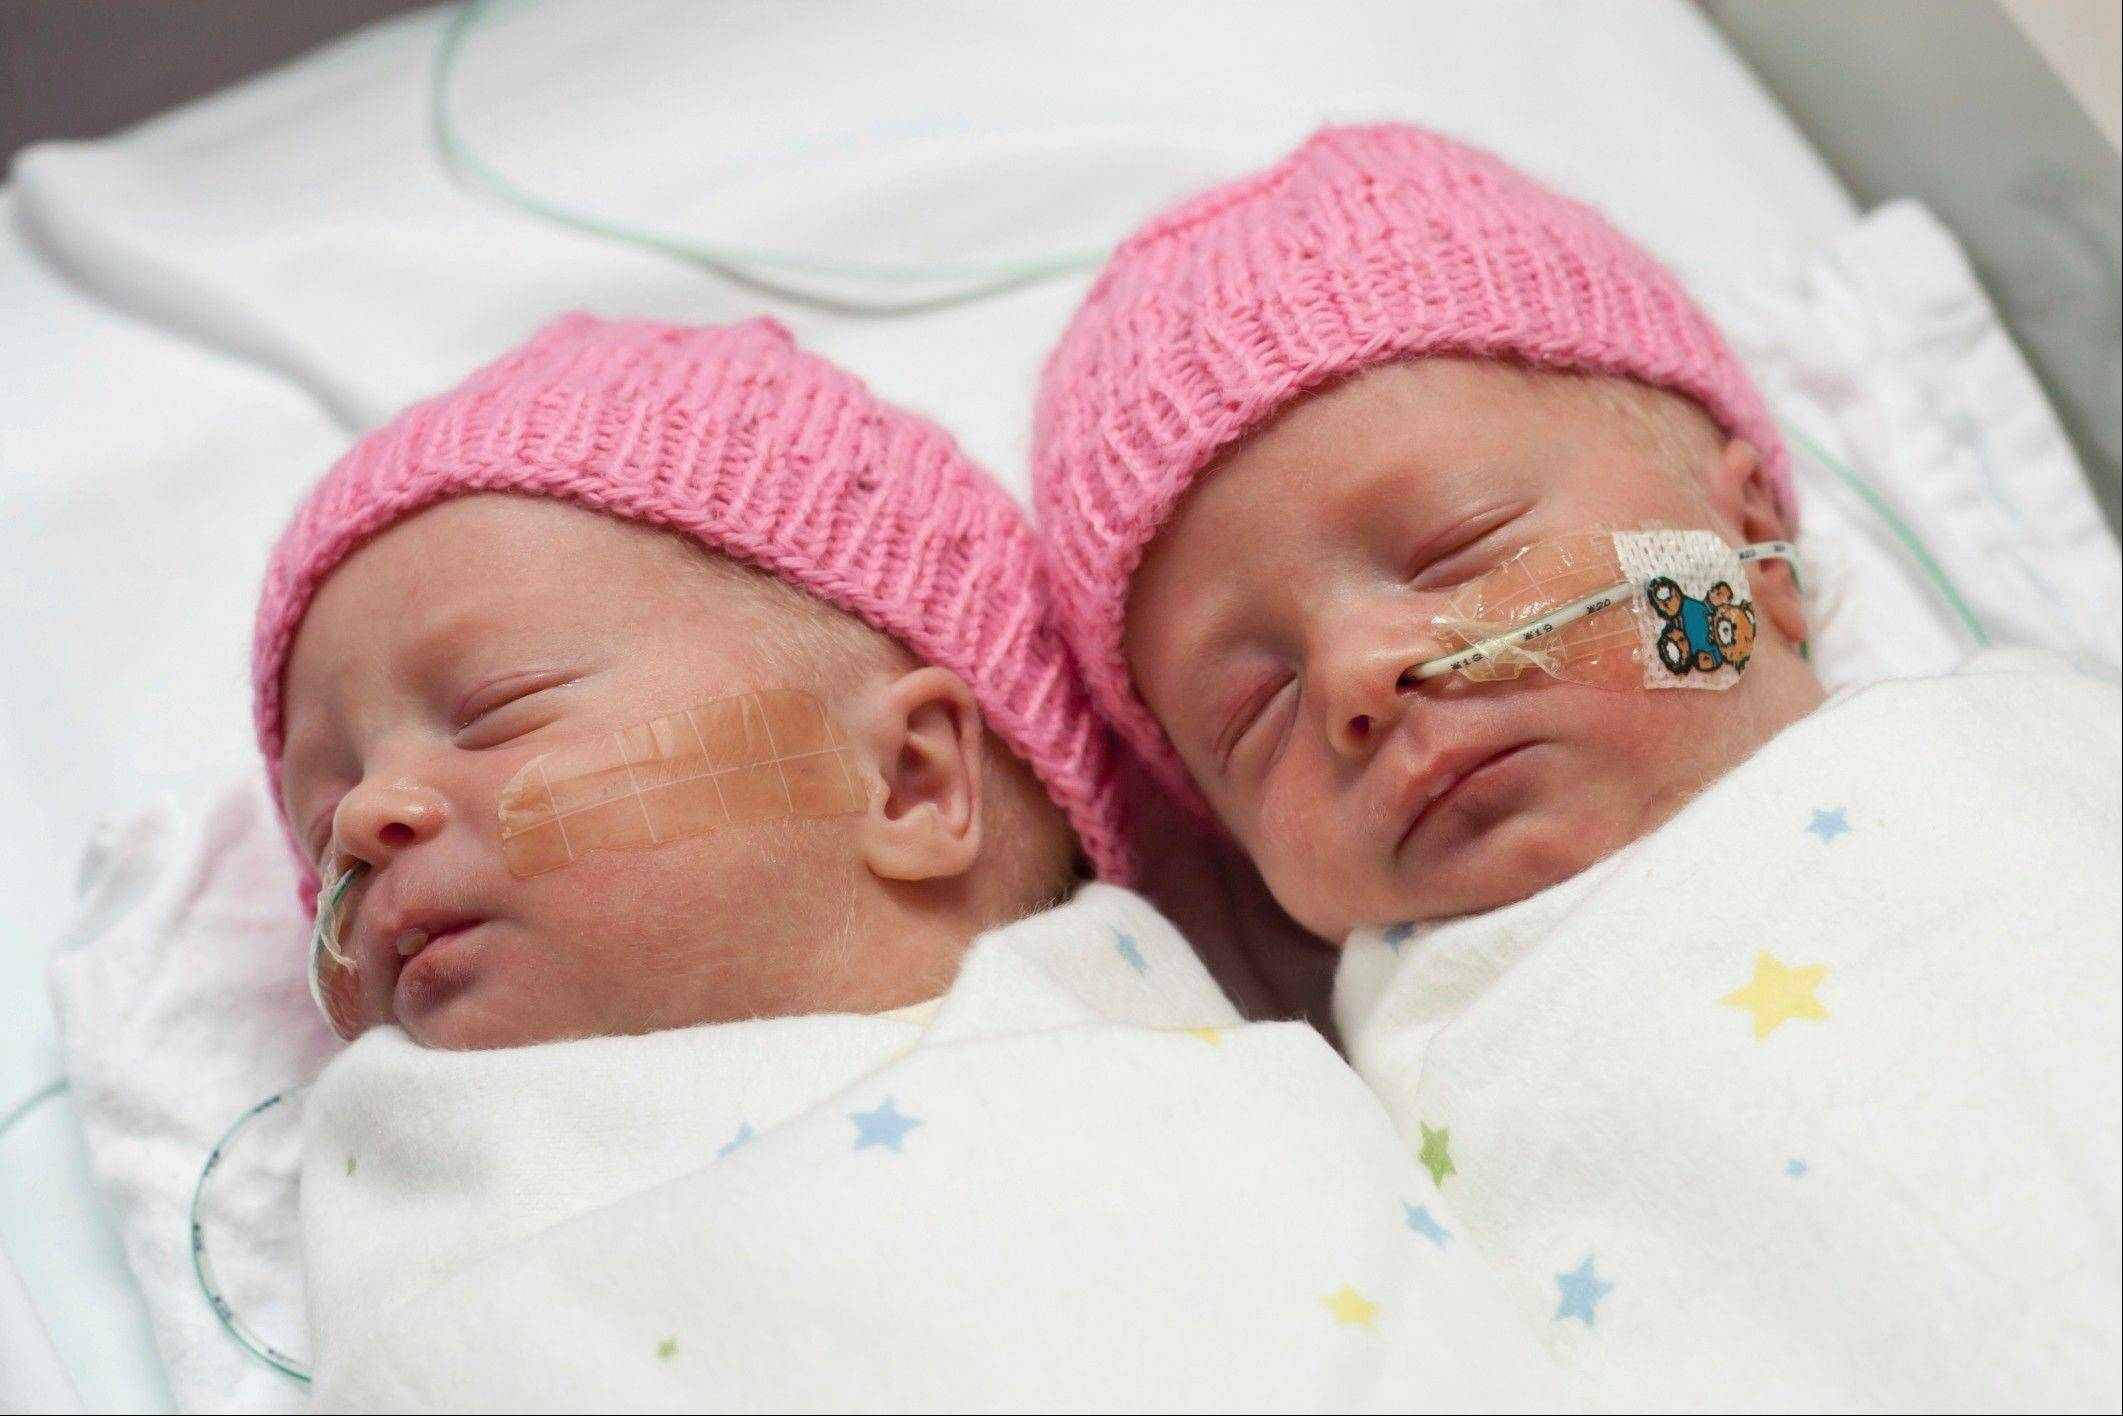 Recent studies are finding that mothers can deliver twins safely without surgery.